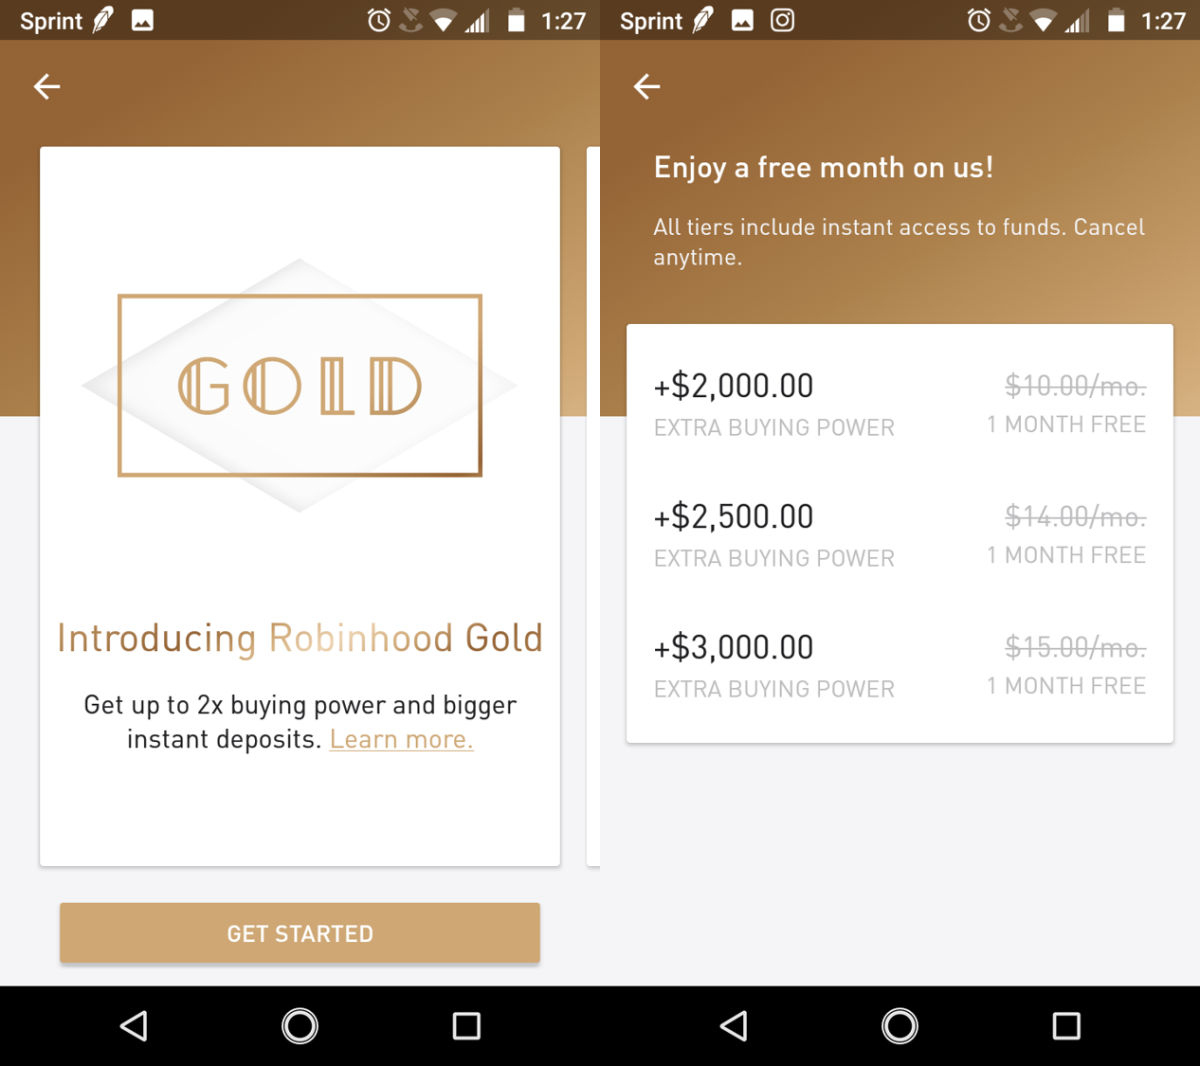 Robinhood default accounts are marginal trading accounts that allow instant settlement however the free version of the app has small instant margins but can be extended with a subscription to Robinhood Gold.